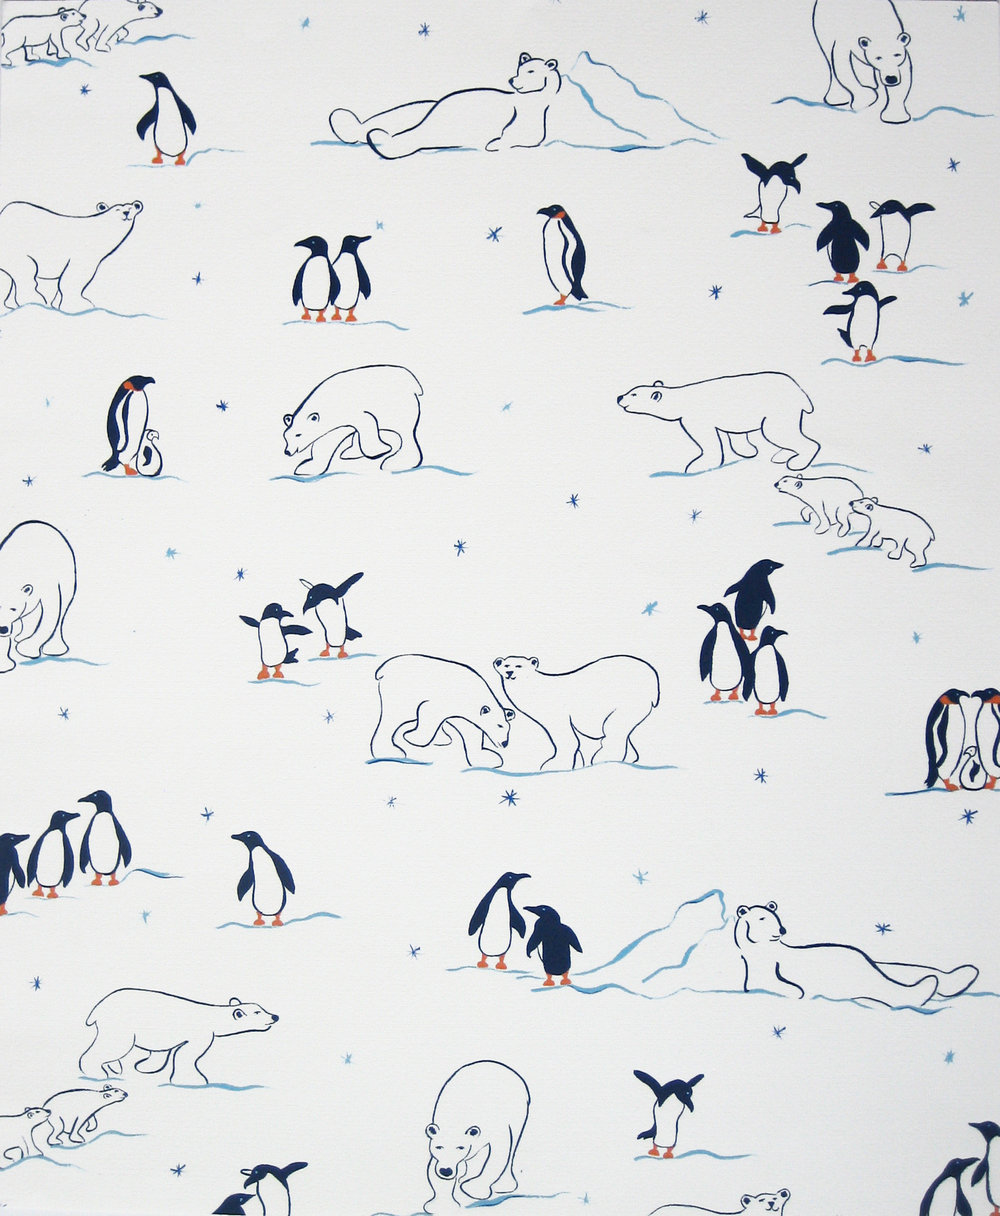 Children's - Penguins and Polar Bears copy.jpg